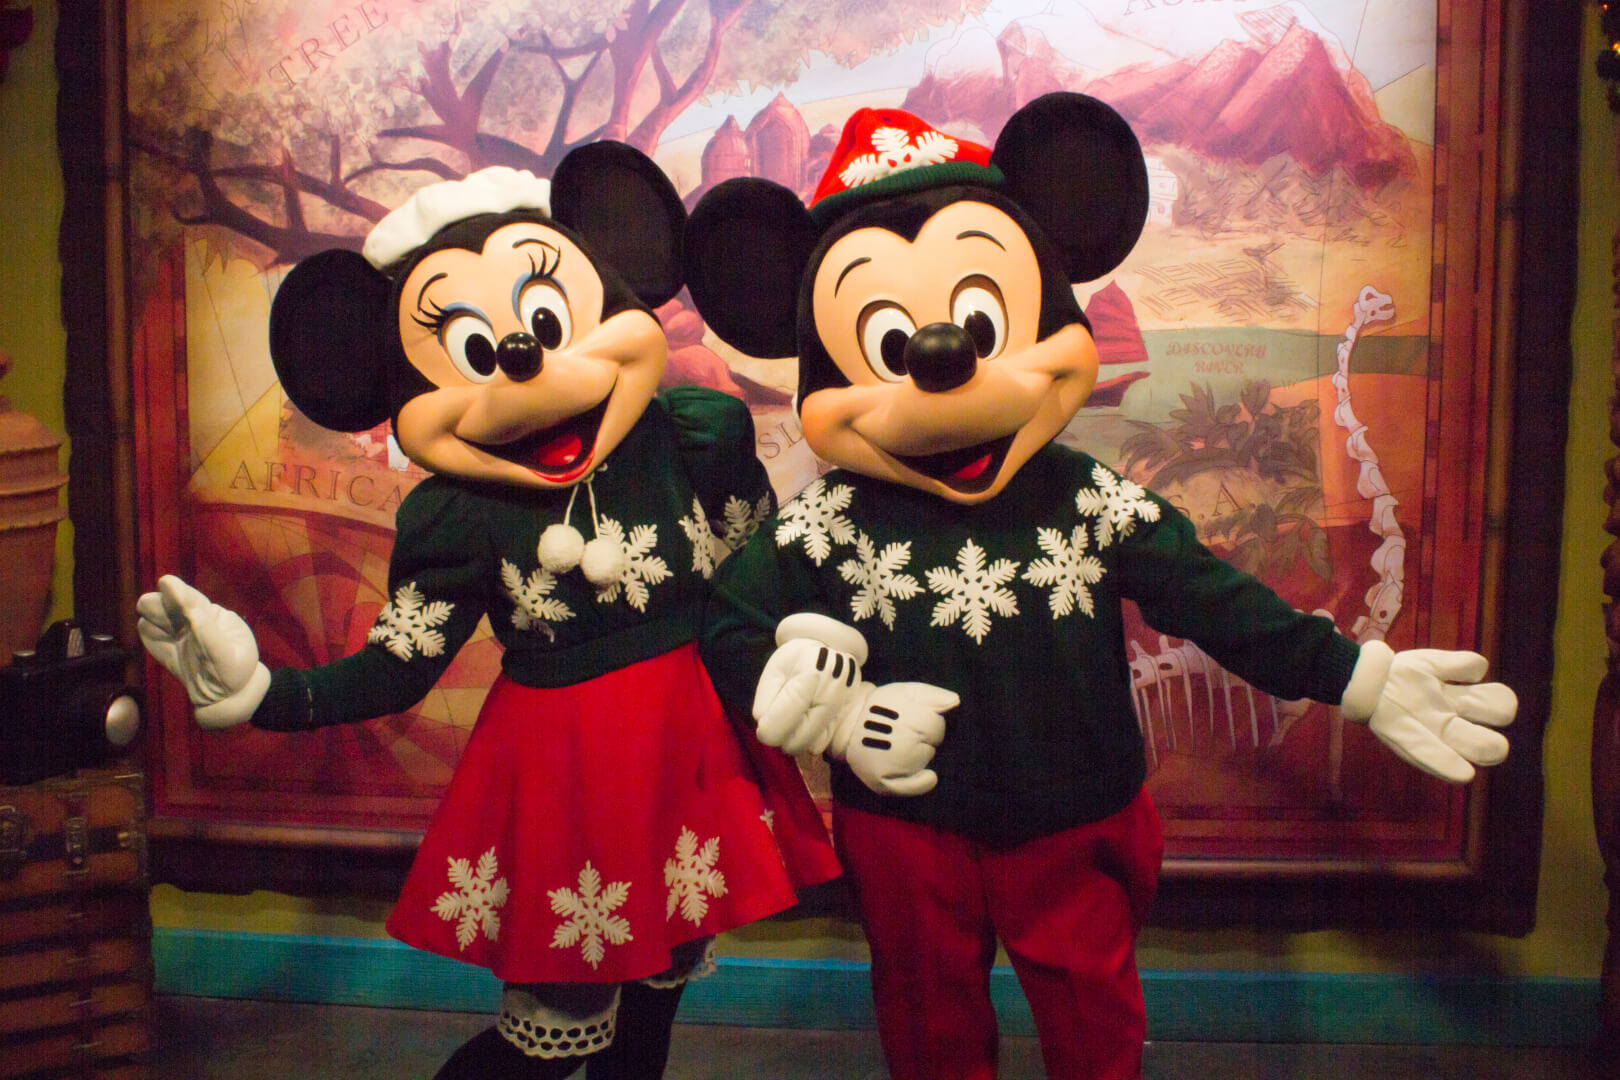 Mickey Mouse And Minnie Mouse Say Hello In Festive Holiday